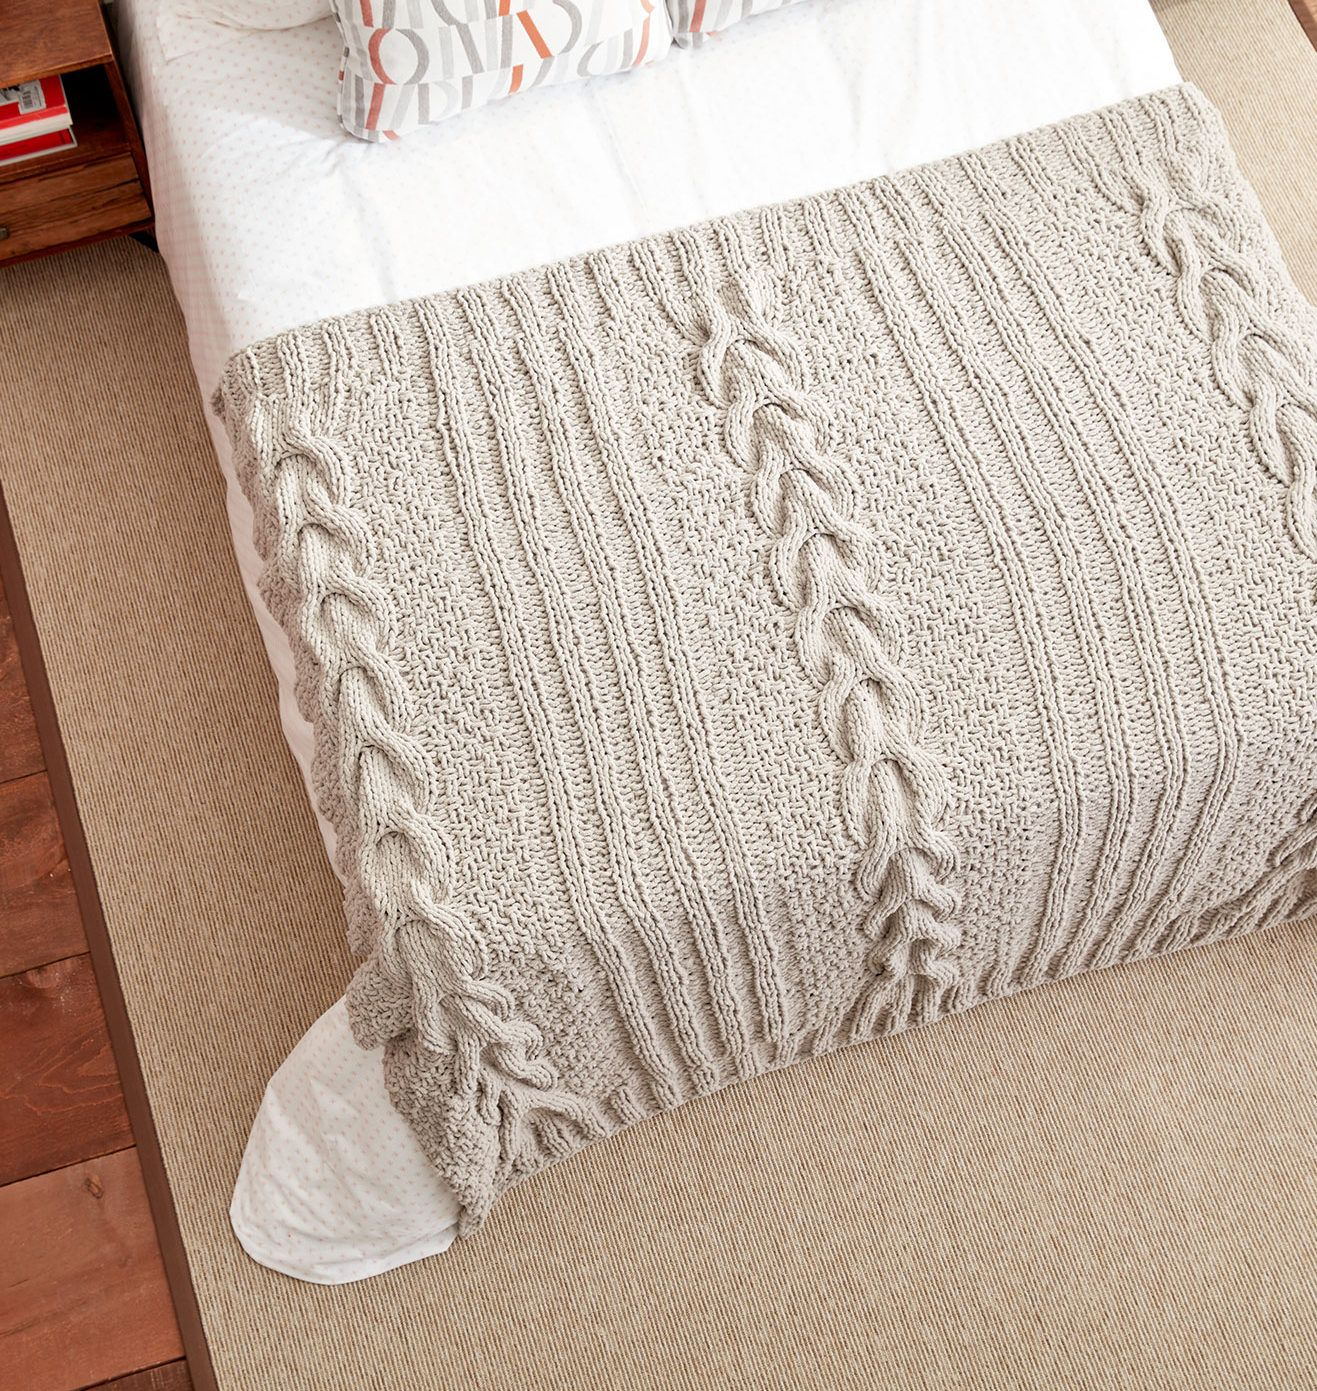 Cable afghan knitting patterns super bulky yarn moss stitch and cable afghan knitting patterns bankloansurffo Image collections